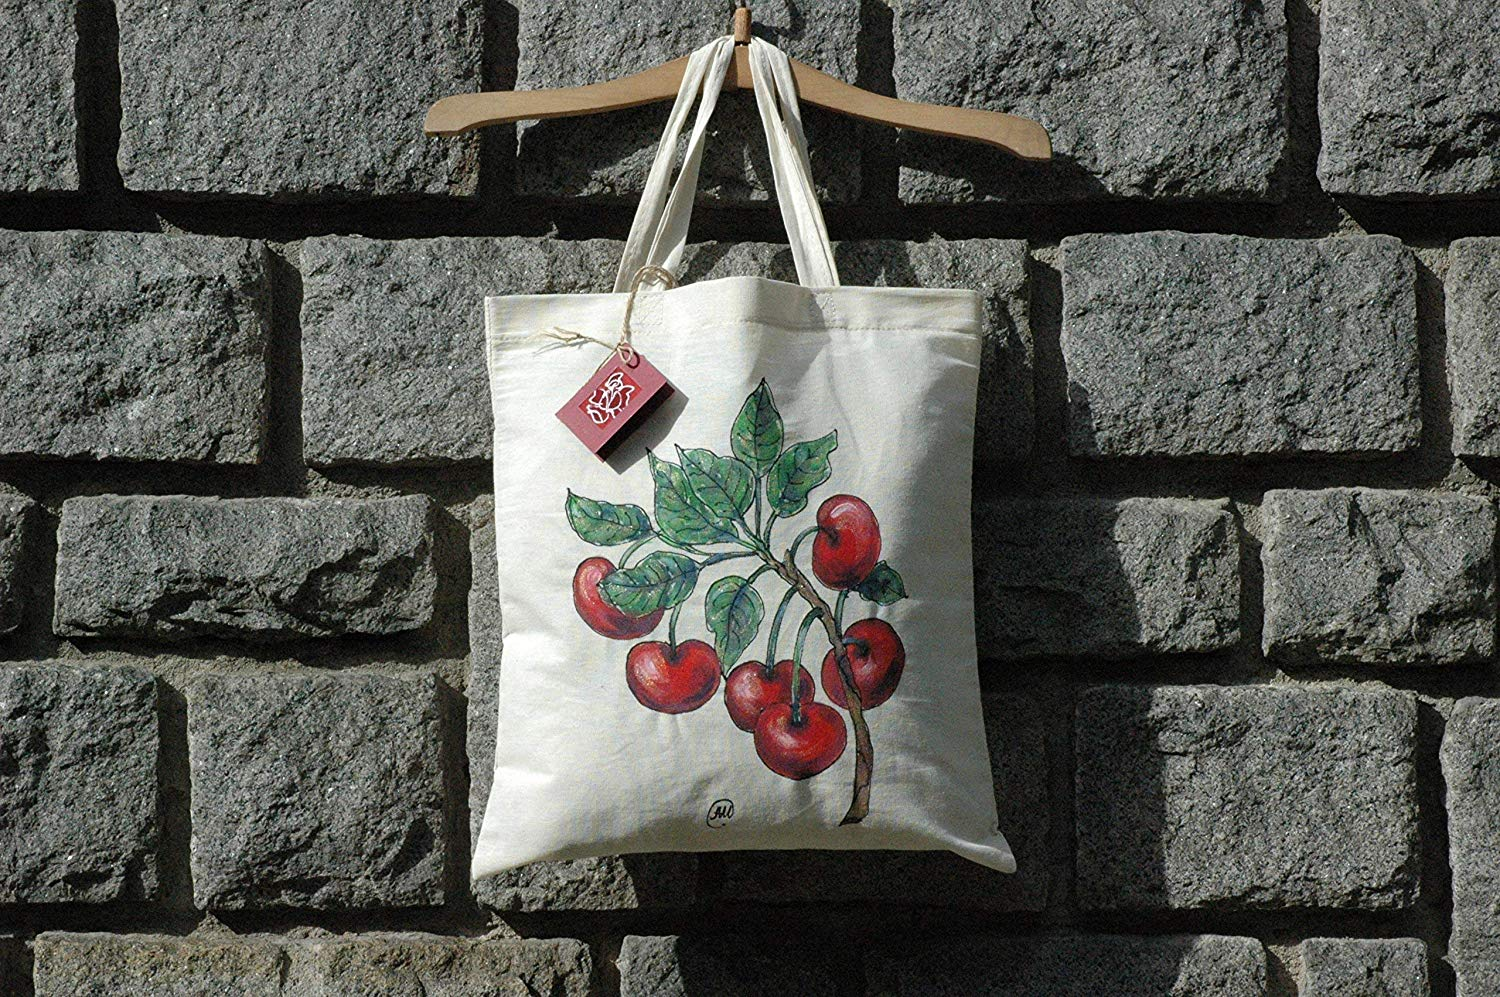 Sale!!!15% Off,Hand Painted Cherryies Cotton Bag,Cherry Illustration on tote bag,Organic cotton tote bag,Acrylic Painted Cherries,Bag Summer Fruit Cherry.